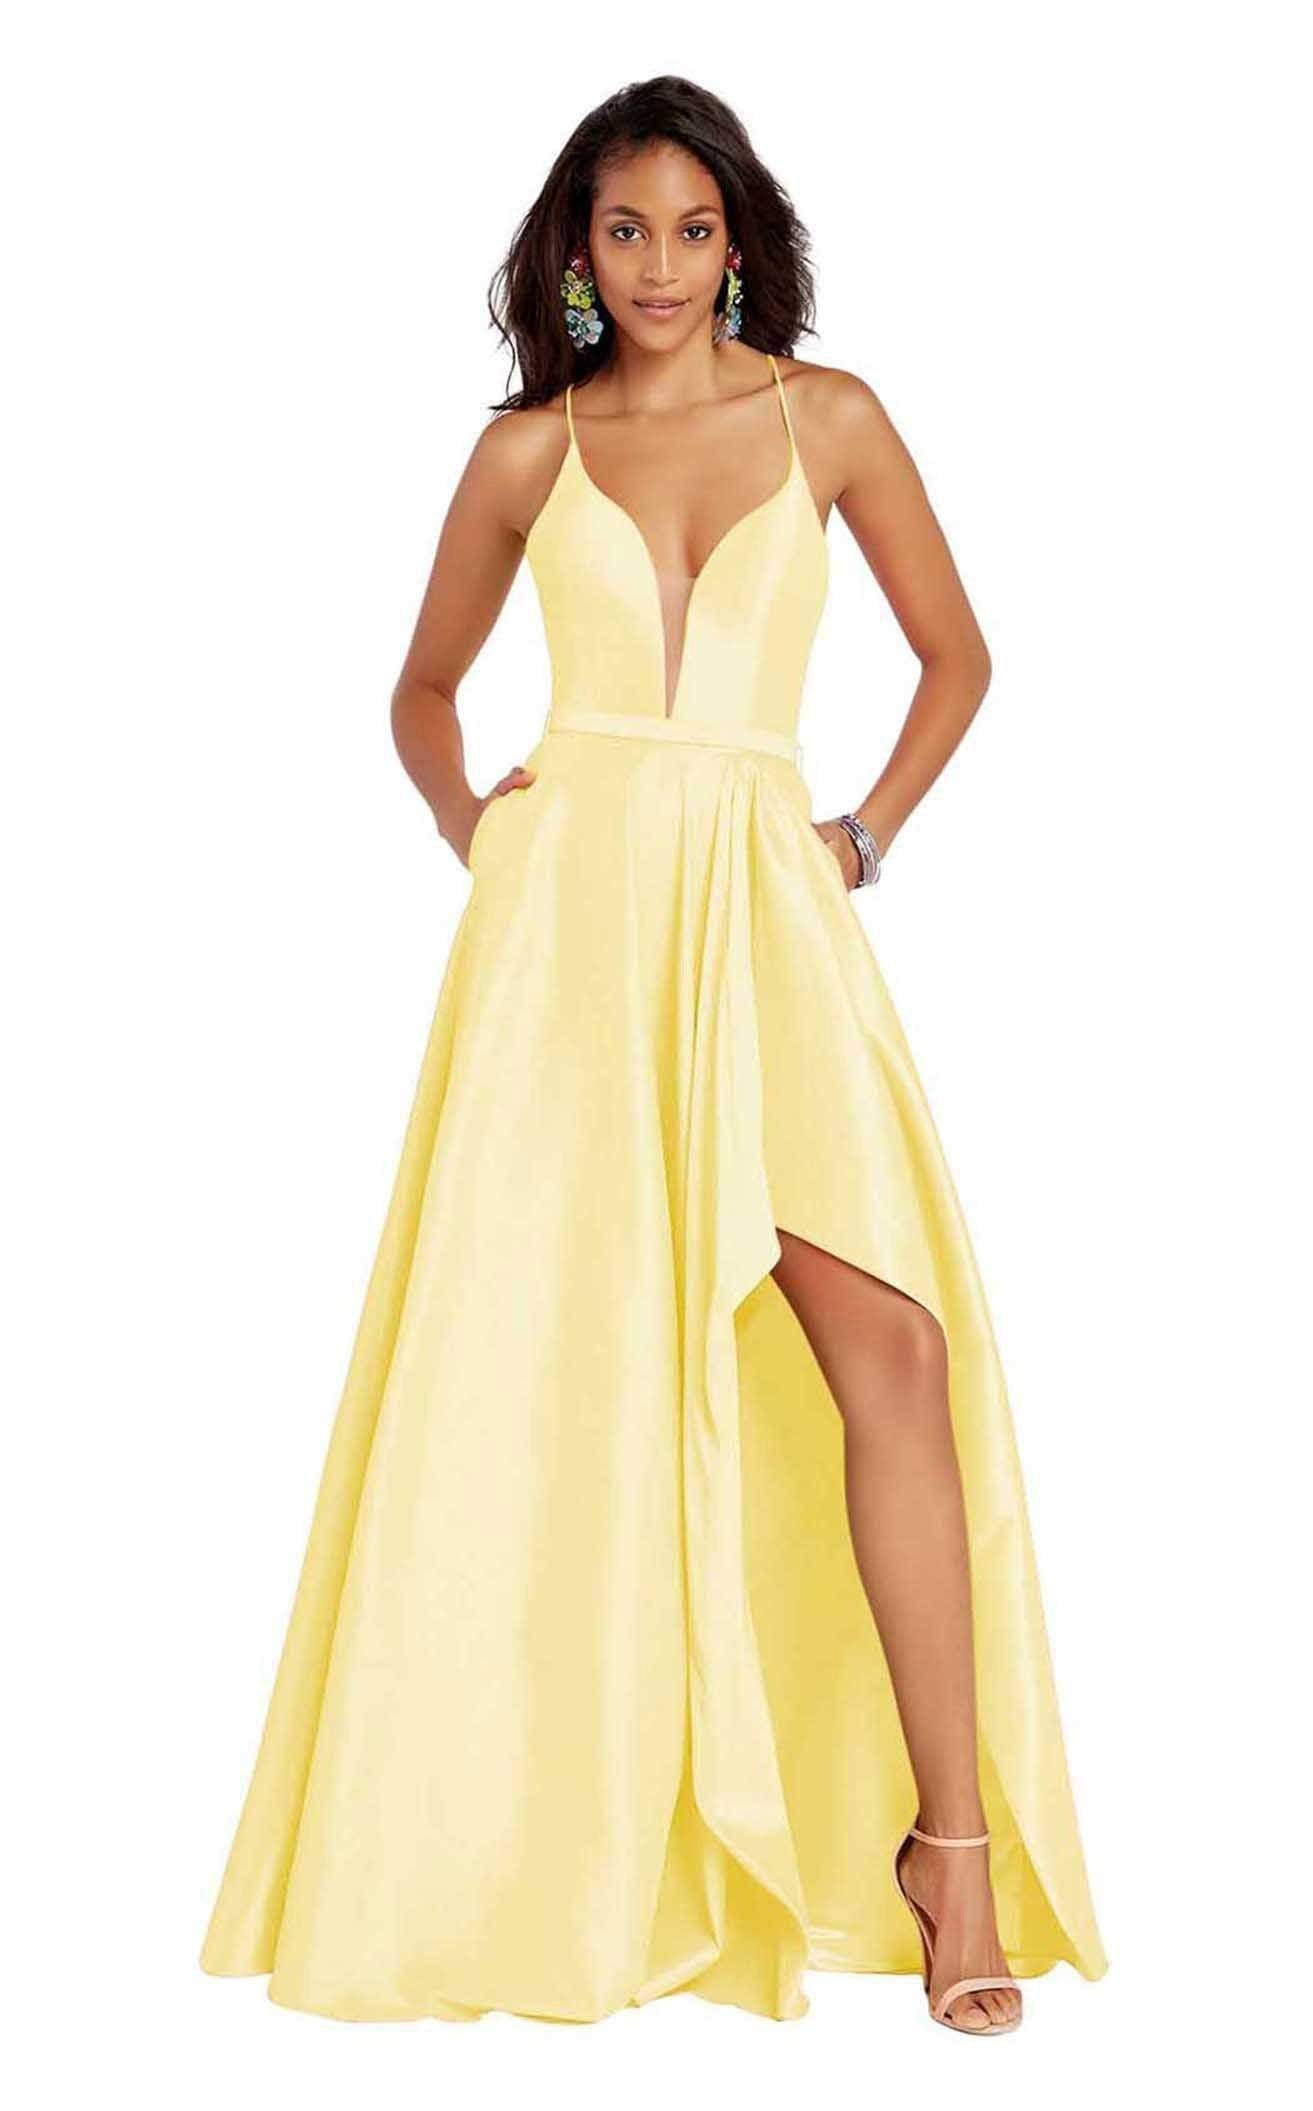 Alyce Paris - 60394 Illusion Plunging Neck High-Low Taffeta Prom Dress Special Occasion Dress 00 / Yellow